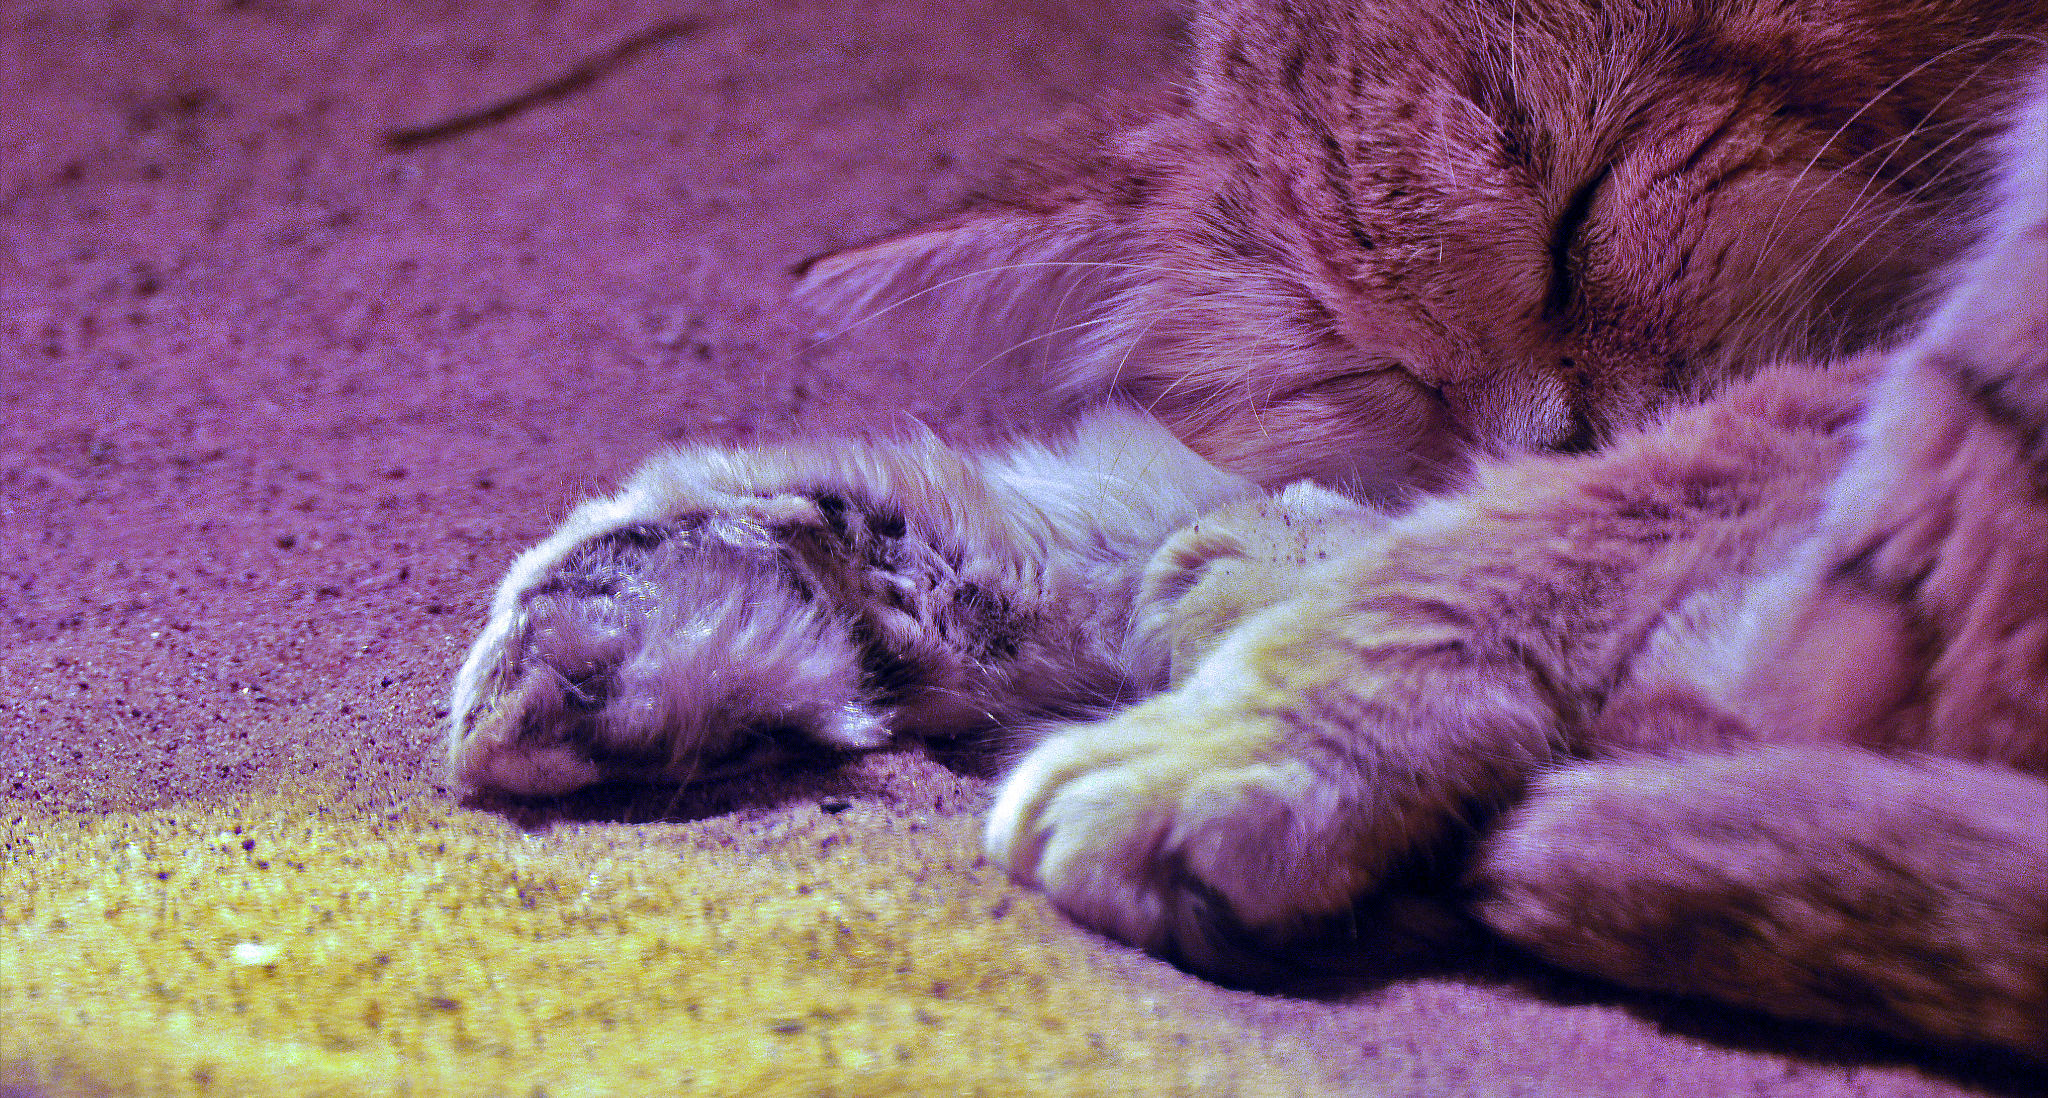 cat paw adaptations | International Society For Endangered Cats